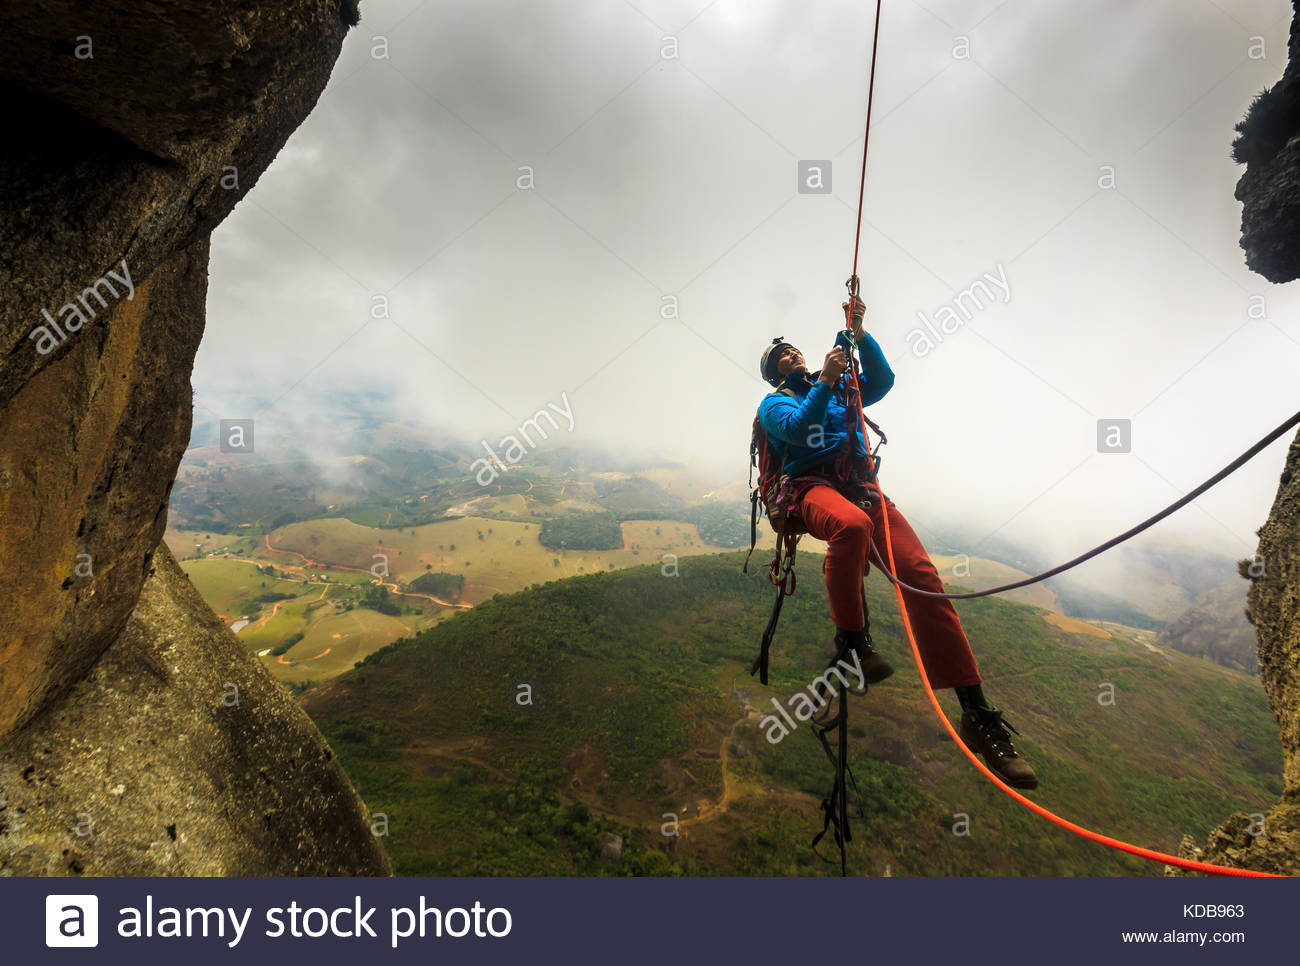 Male climber ascending in Brazilian mountain. - Stock Image